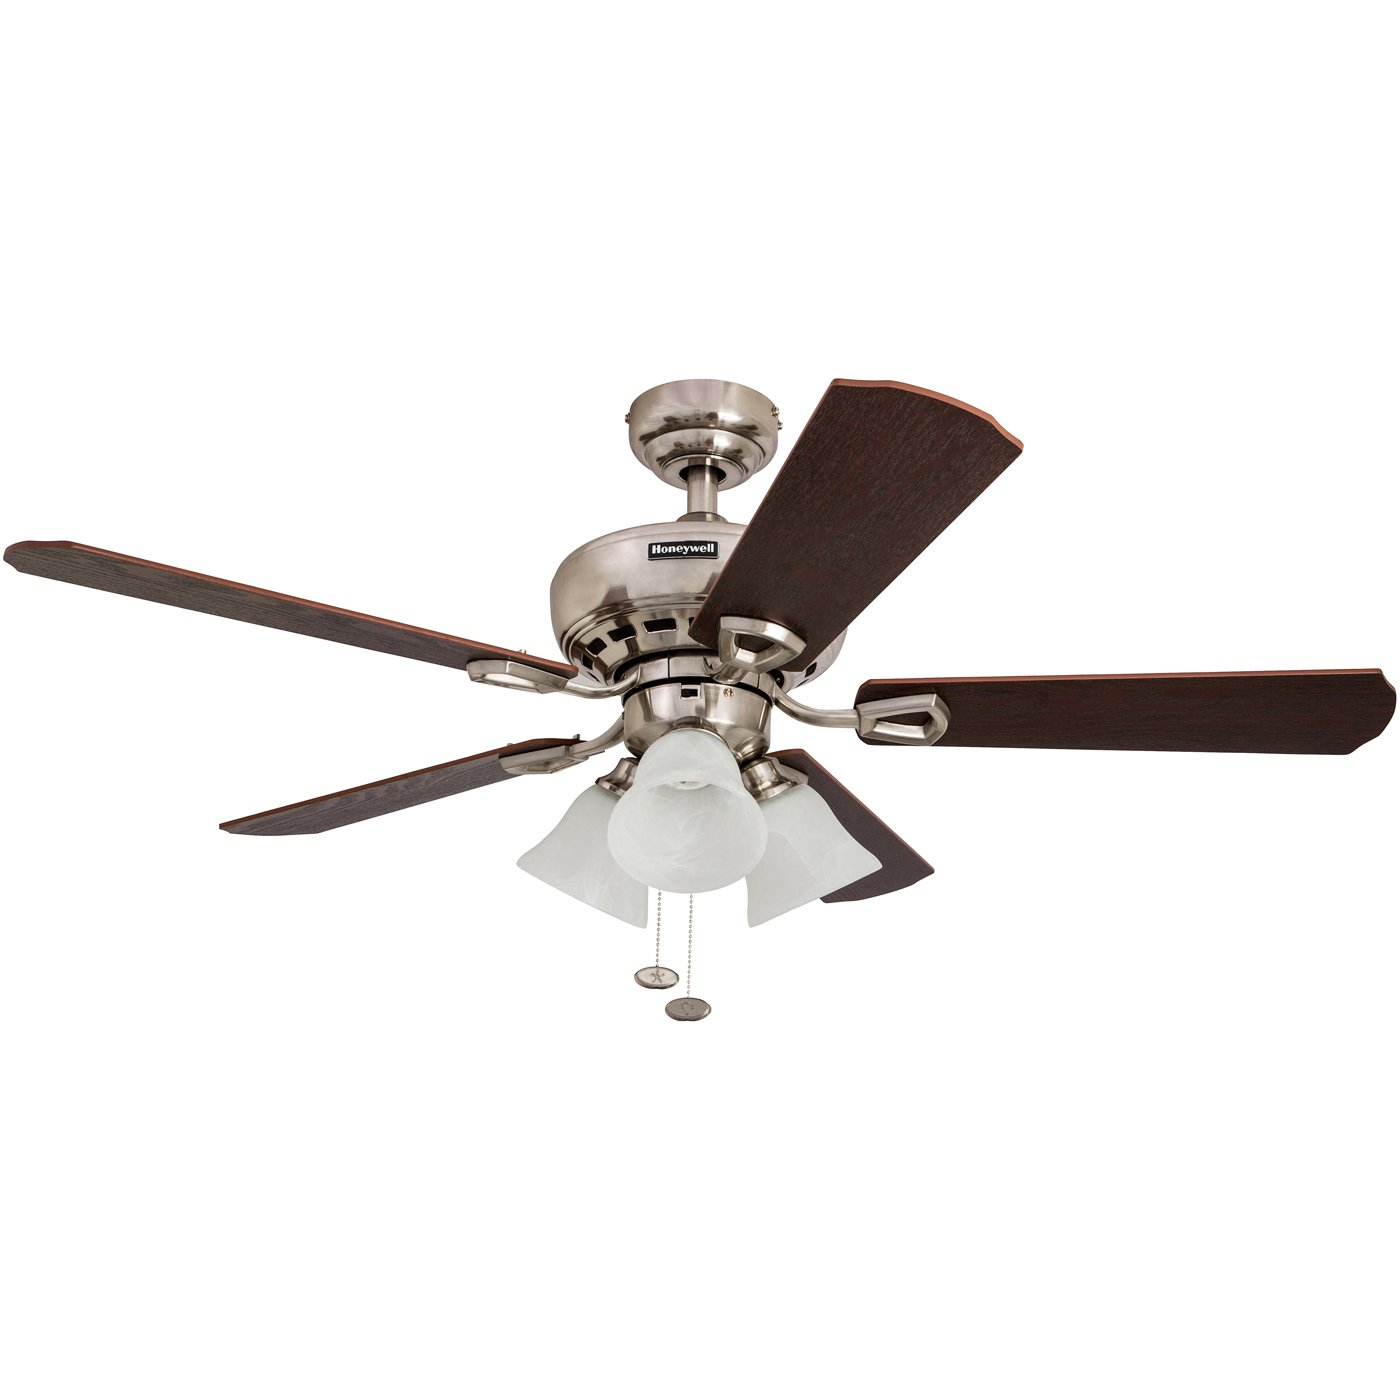 Honeywell Springhill 50184 44'' Ceiling Fan with Swirled White Light Shades, Five Reversible Warm Cherry/Chocolate Maple Blades, Brushed Nickel